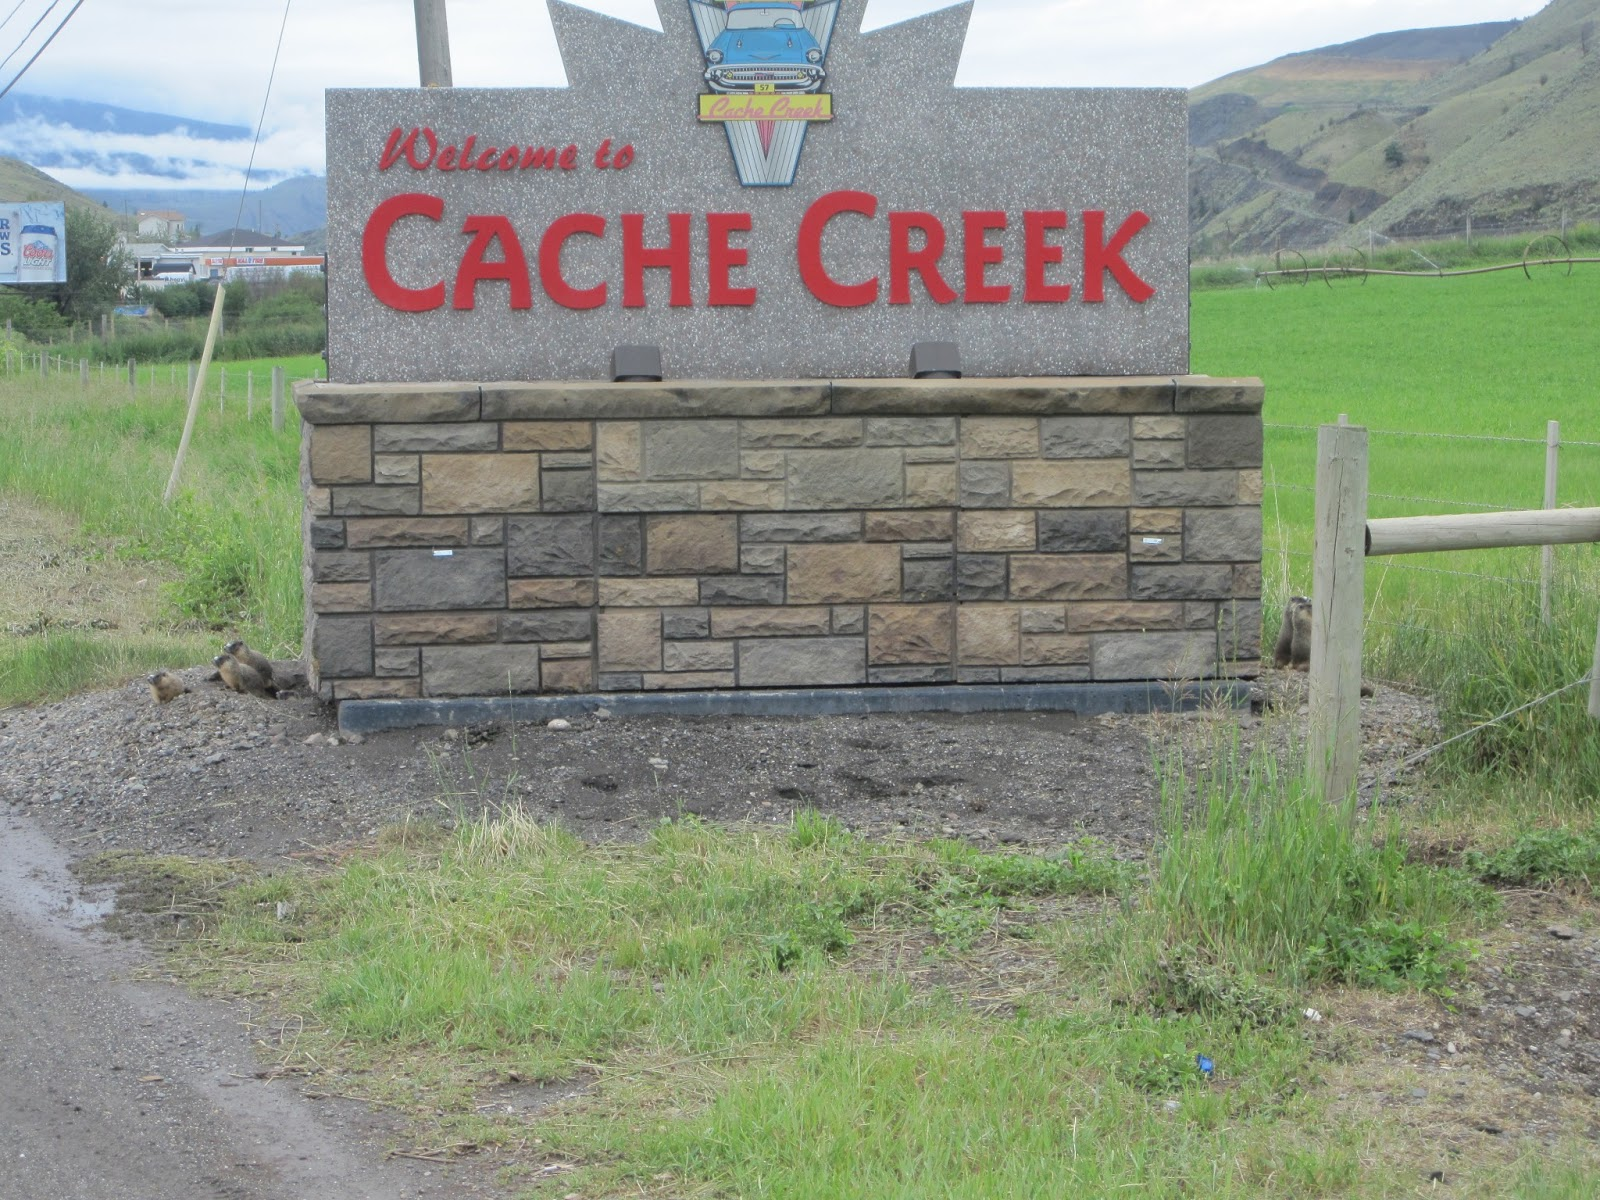 Could be another bad year for flooding in Cache Creek